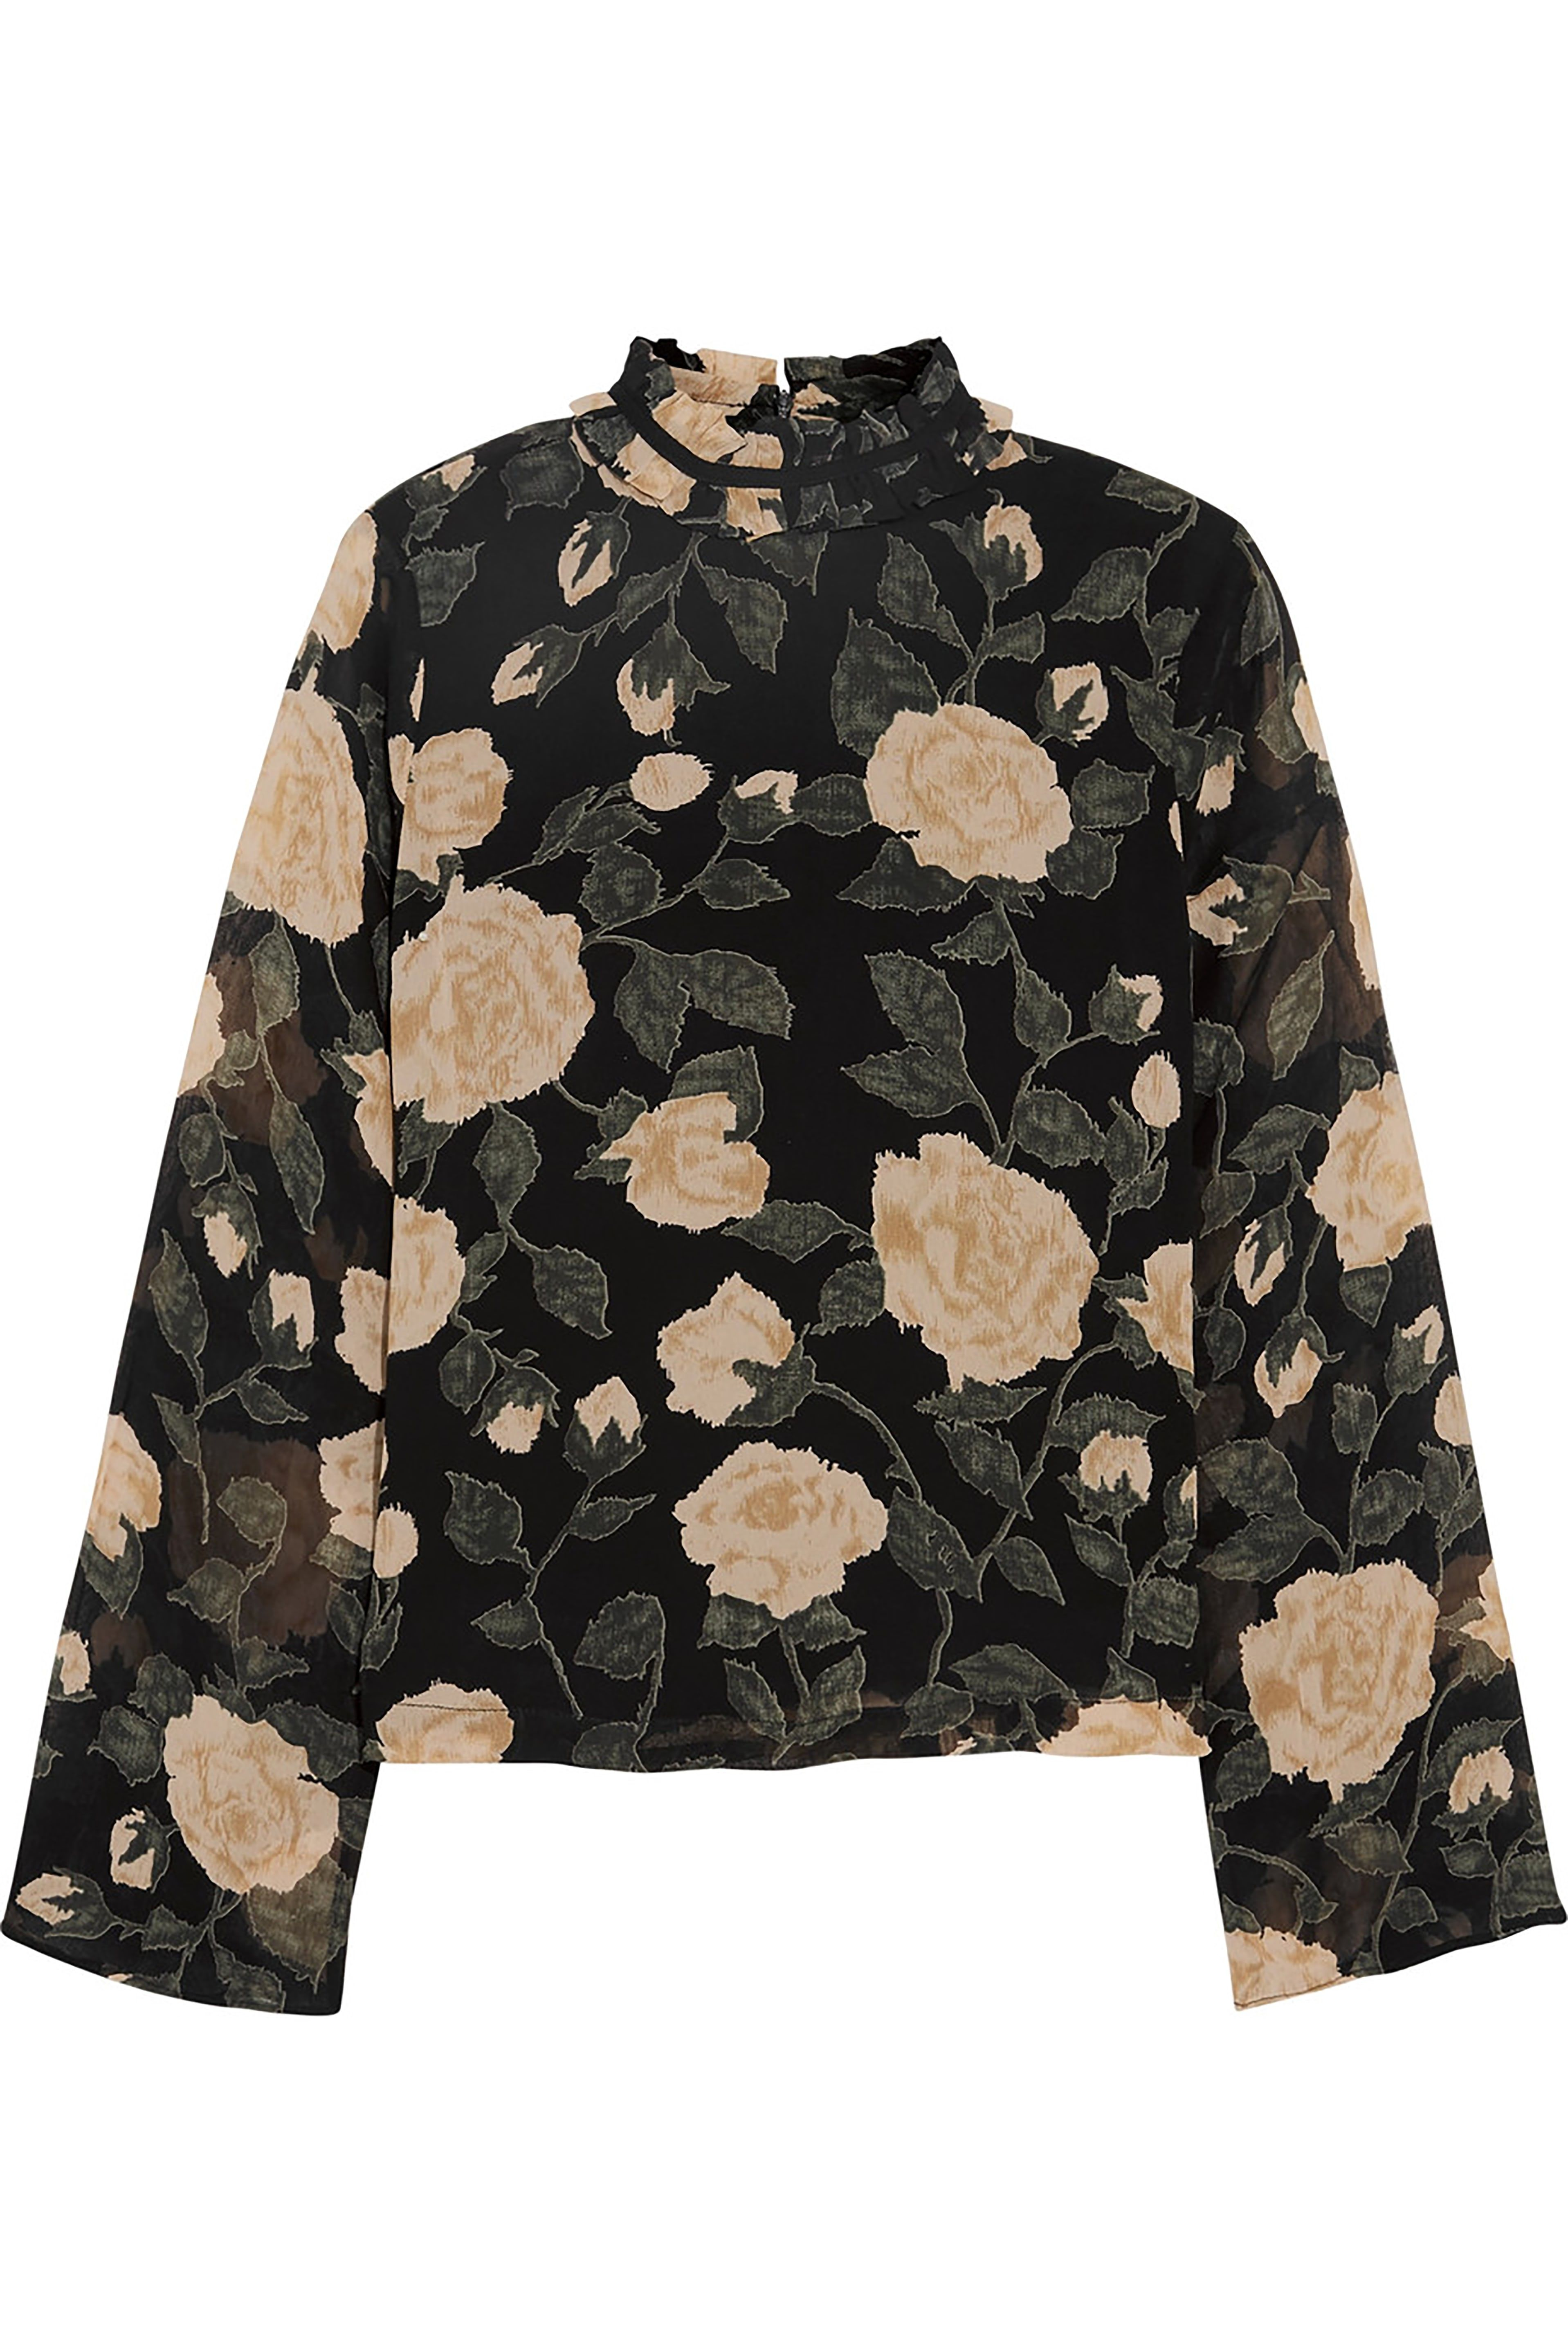 best loved a1807 17a8f Reasons to wear... winter florals – in pictures | Fashion ...